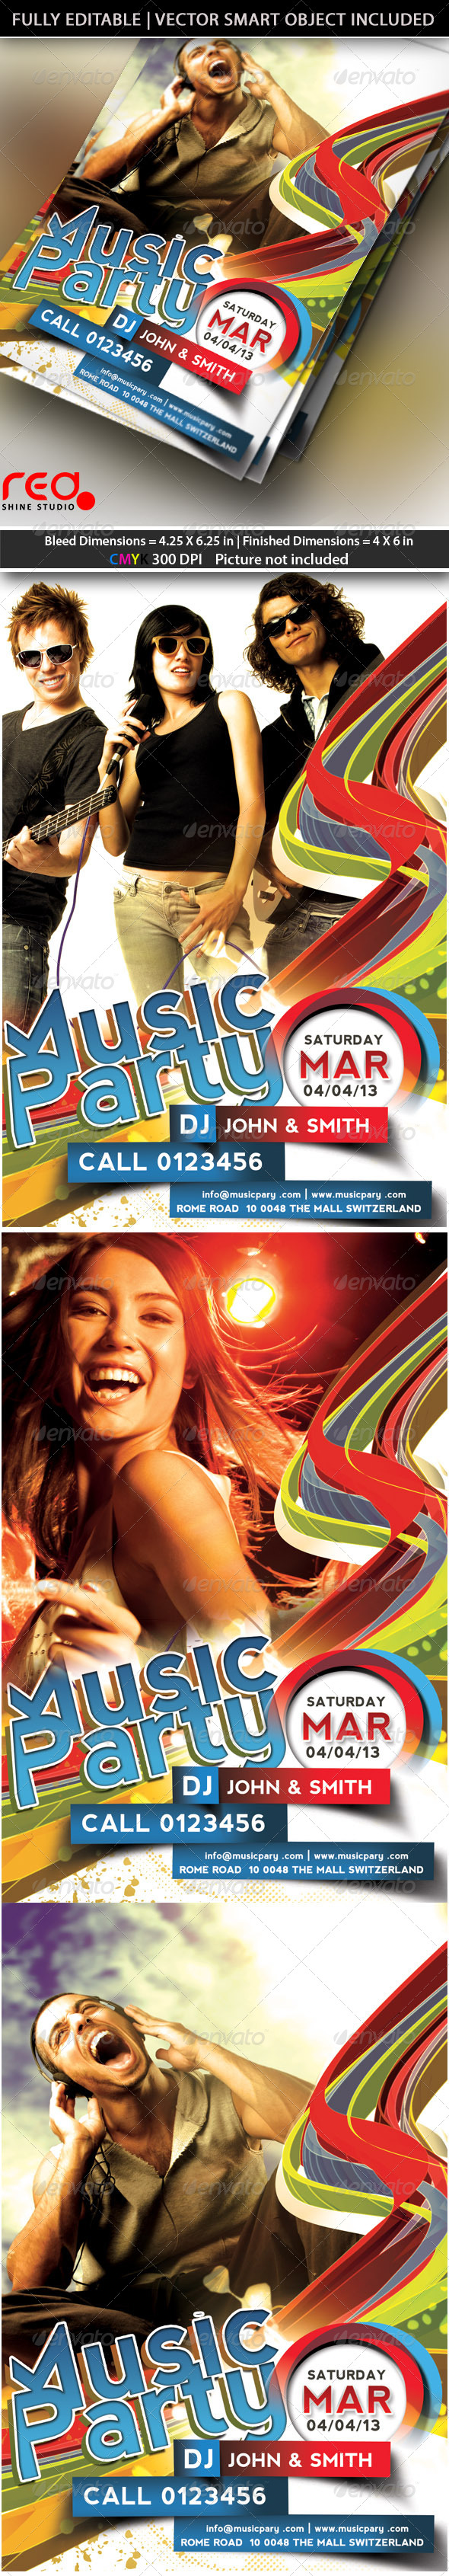 Music Party Flyer Template - Clubs & Parties Events